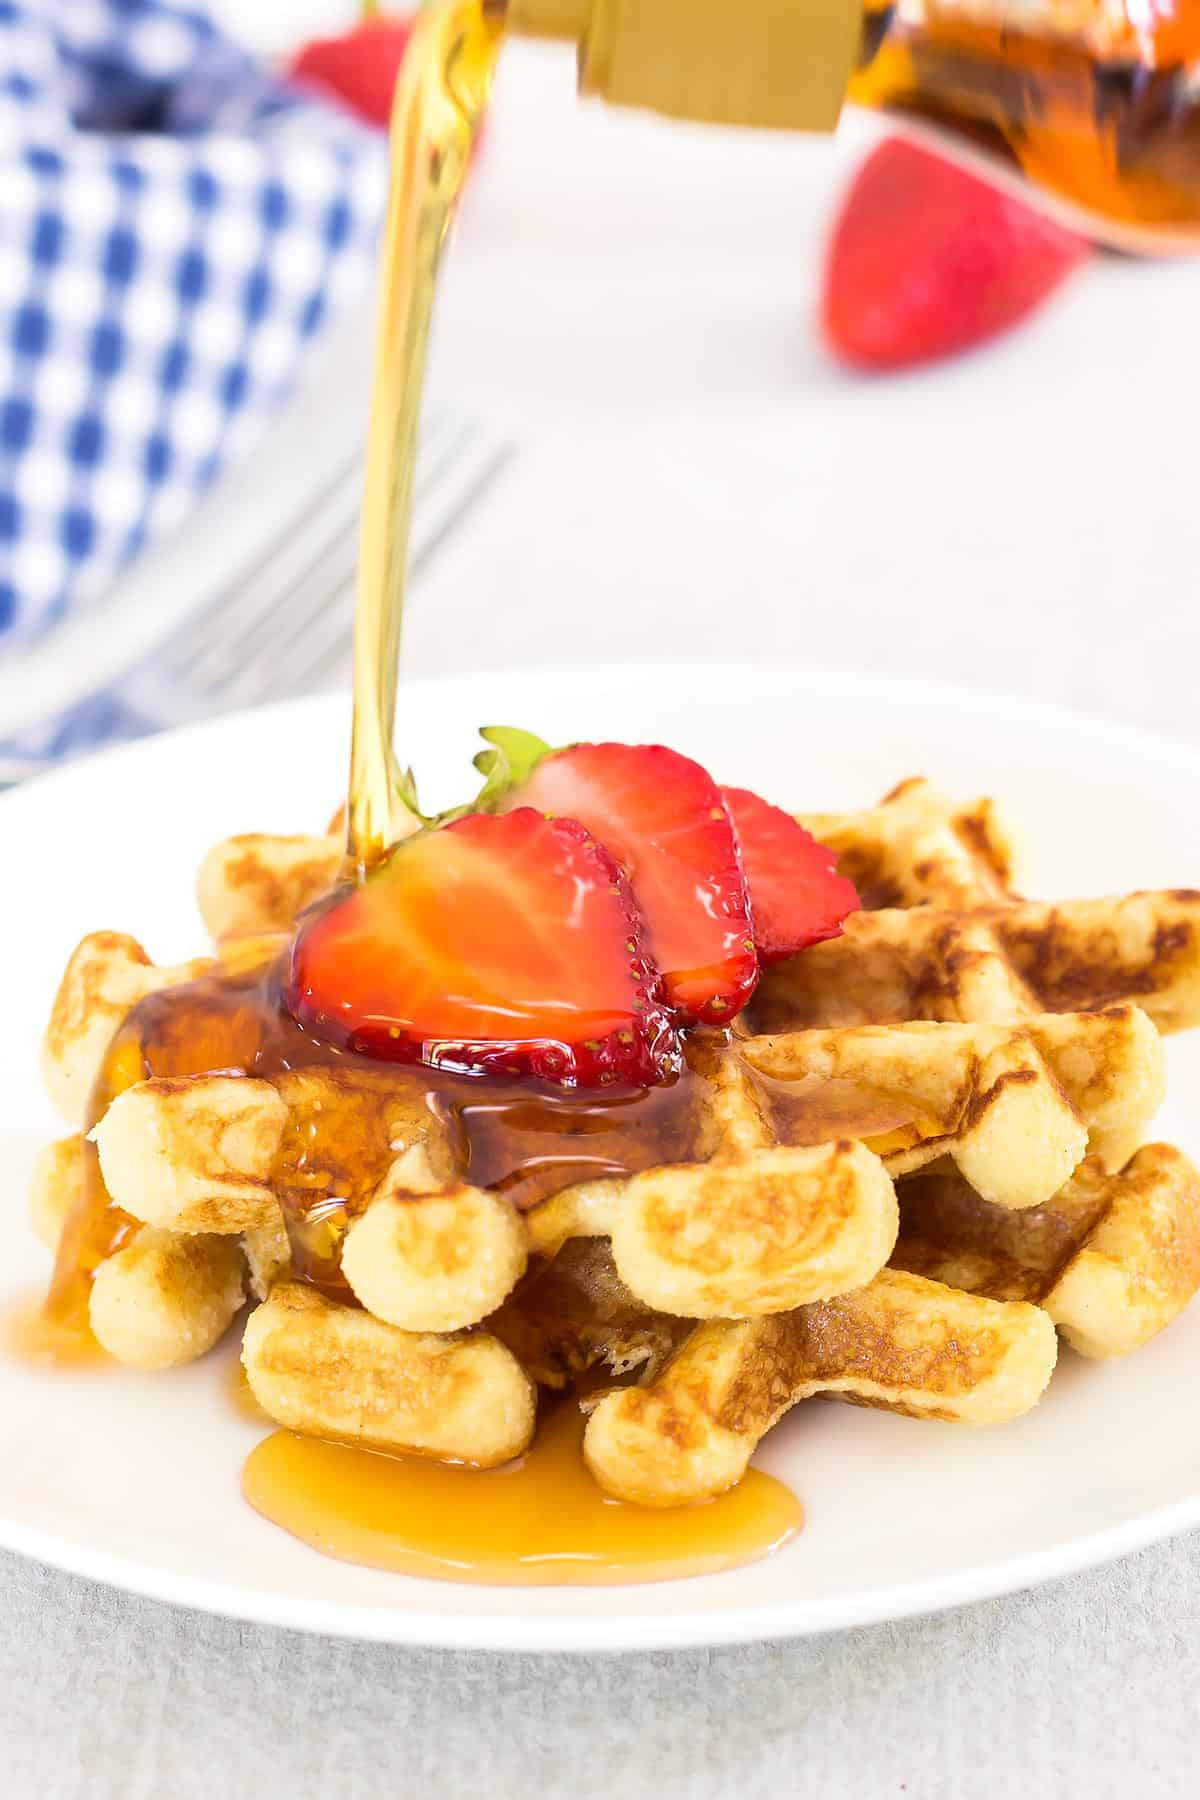 Paleo Coconut Flour Waffles being drizzled with maple syrup